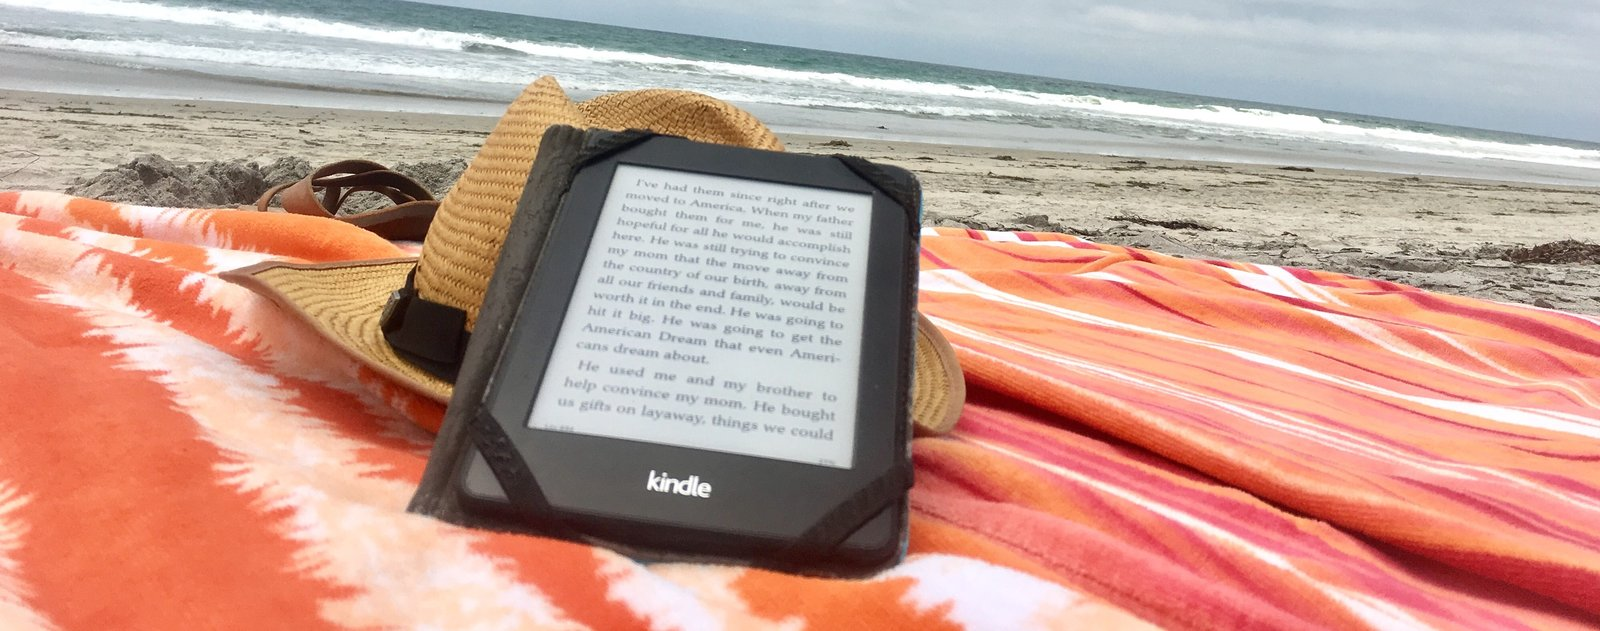 Books + Bikinis – An August Installment